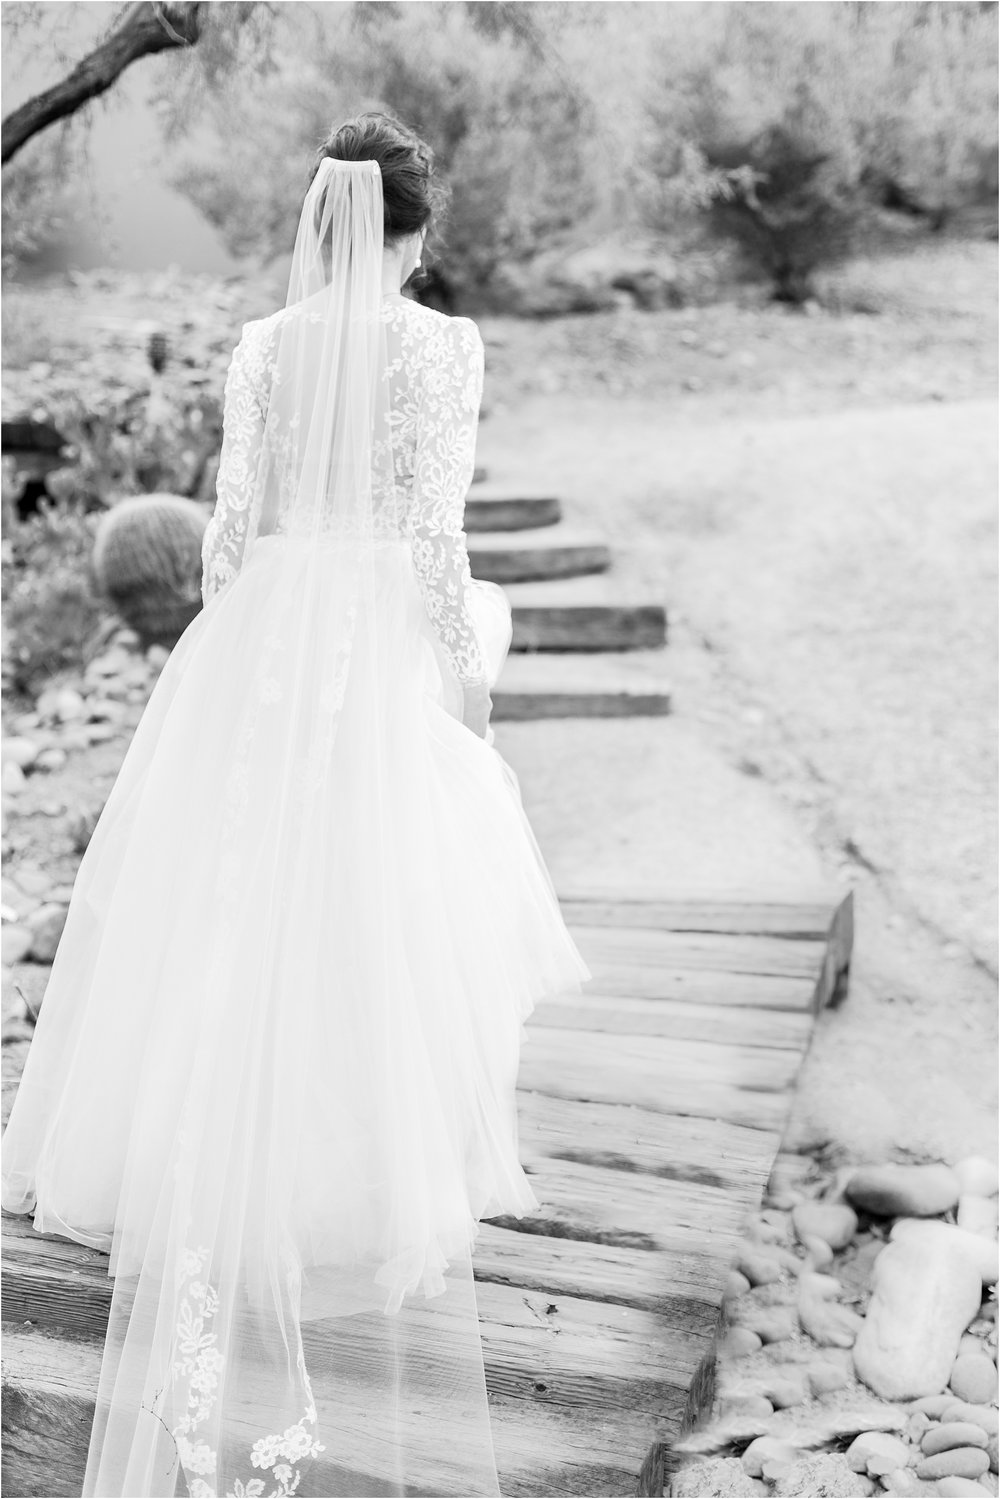 paris-and-ballerina-inspired-bride-wedding-photos-at-phoenix-marriott-tempe-at-the-buttes-in-tempe-arizona-by-courtney-carolyn-photography_0013.jpg